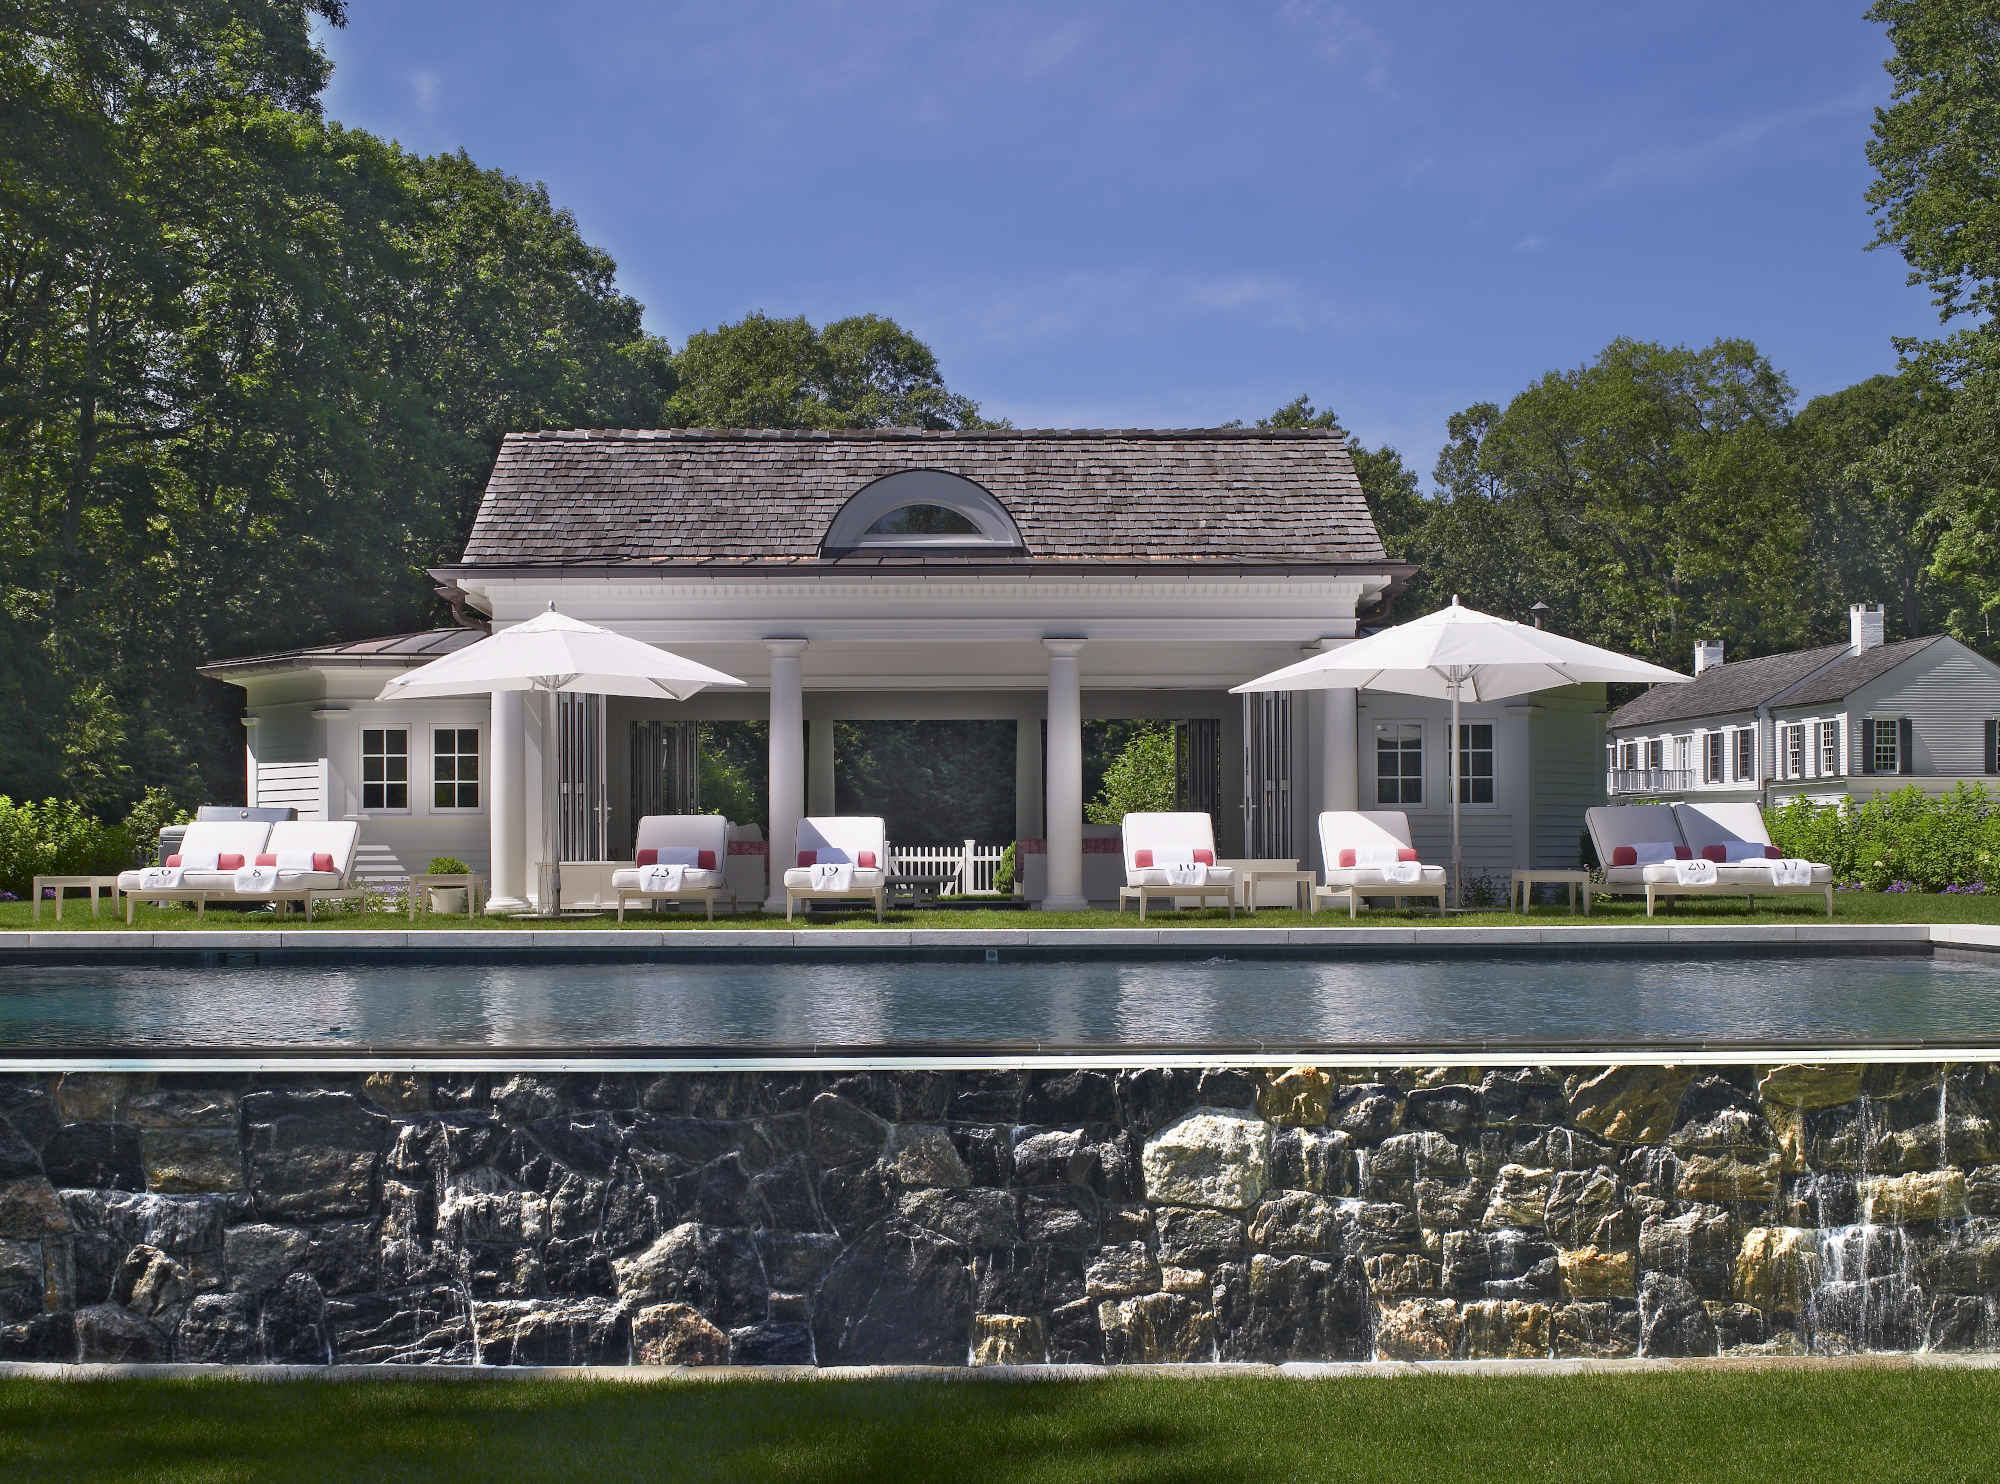 Poolhouse_photo_2.jpg